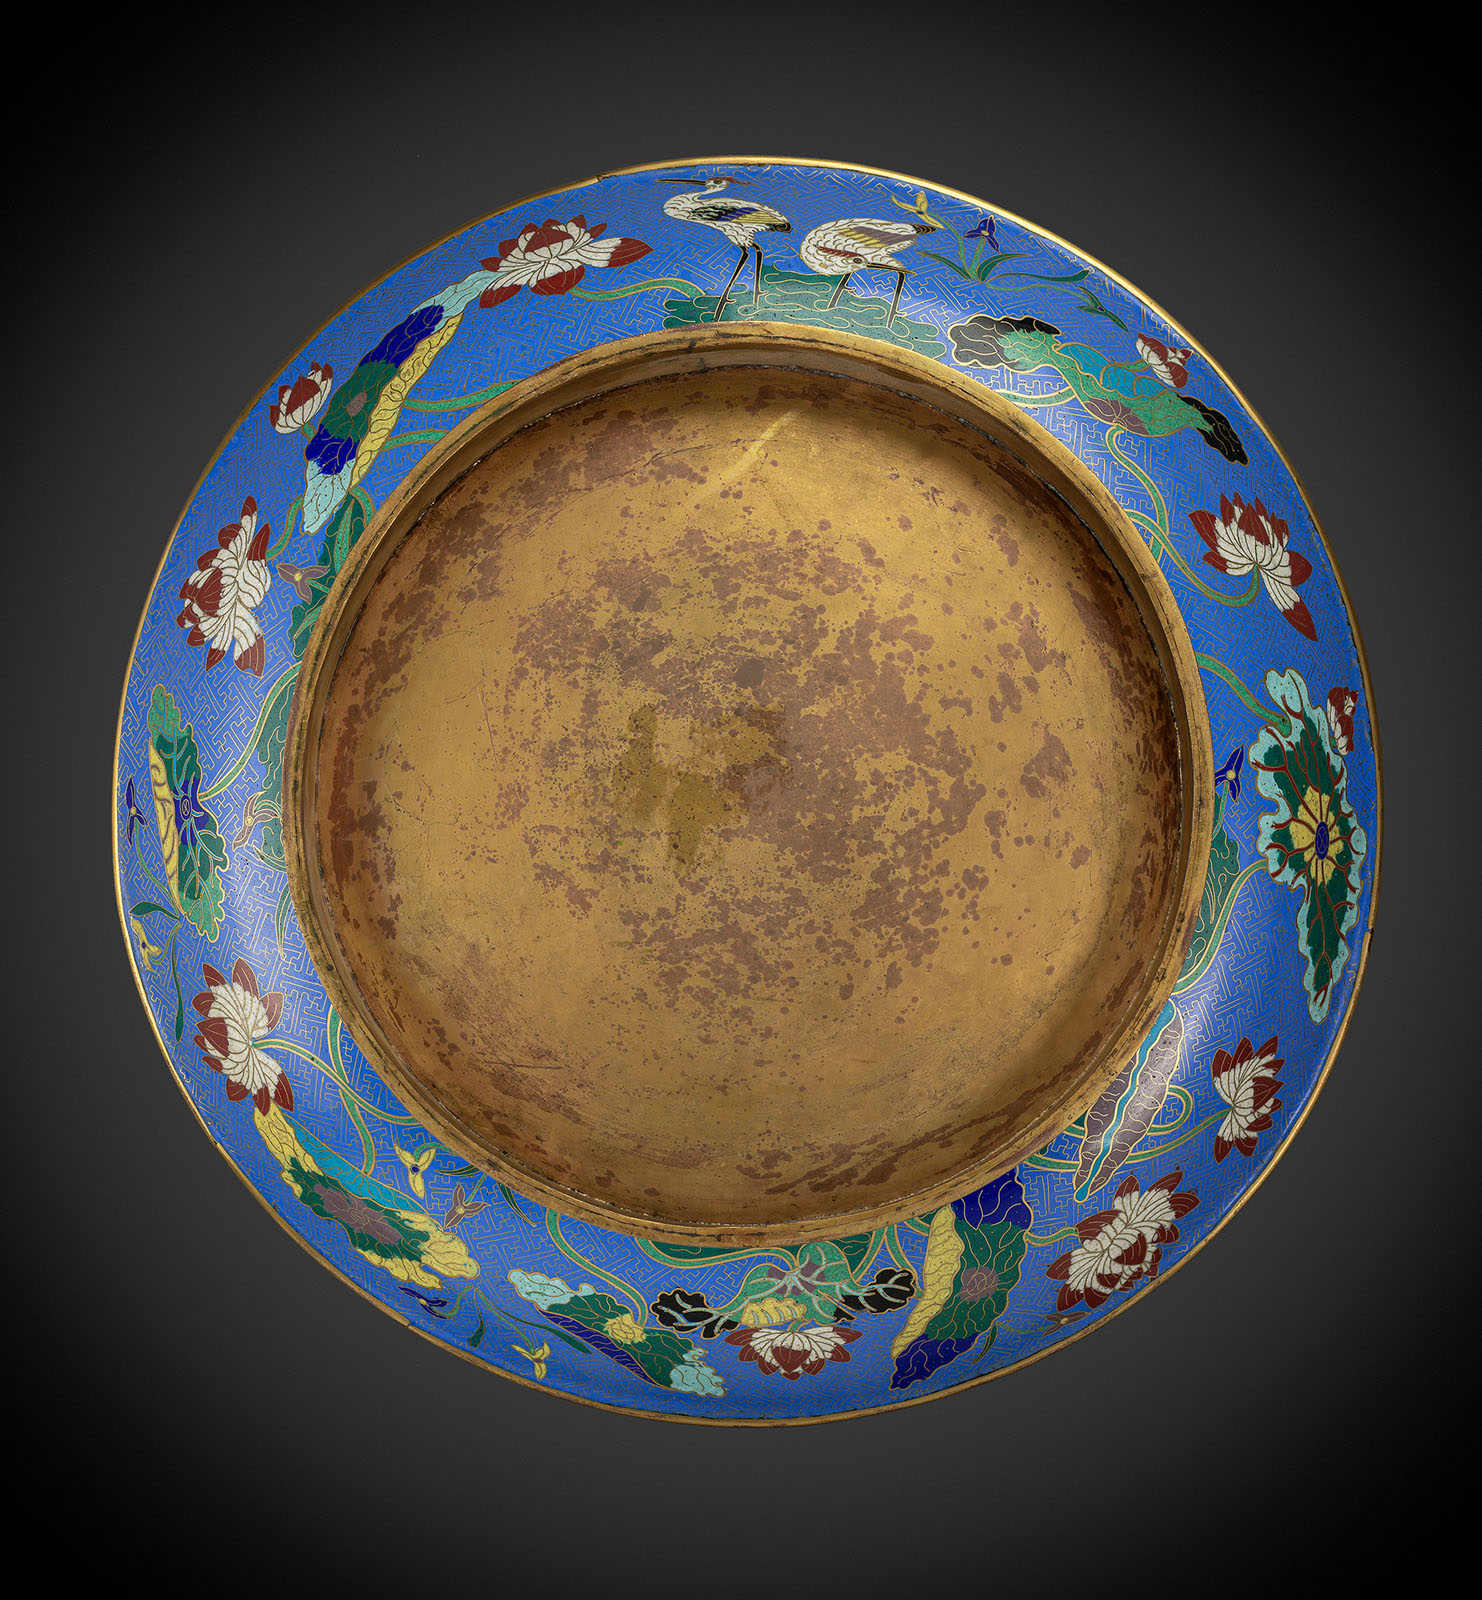 A VERY LARGE CLOISONNÉ CHARGER WITH VARIOUS FISHES AND SEA ANIMALS - Image 2 of 2